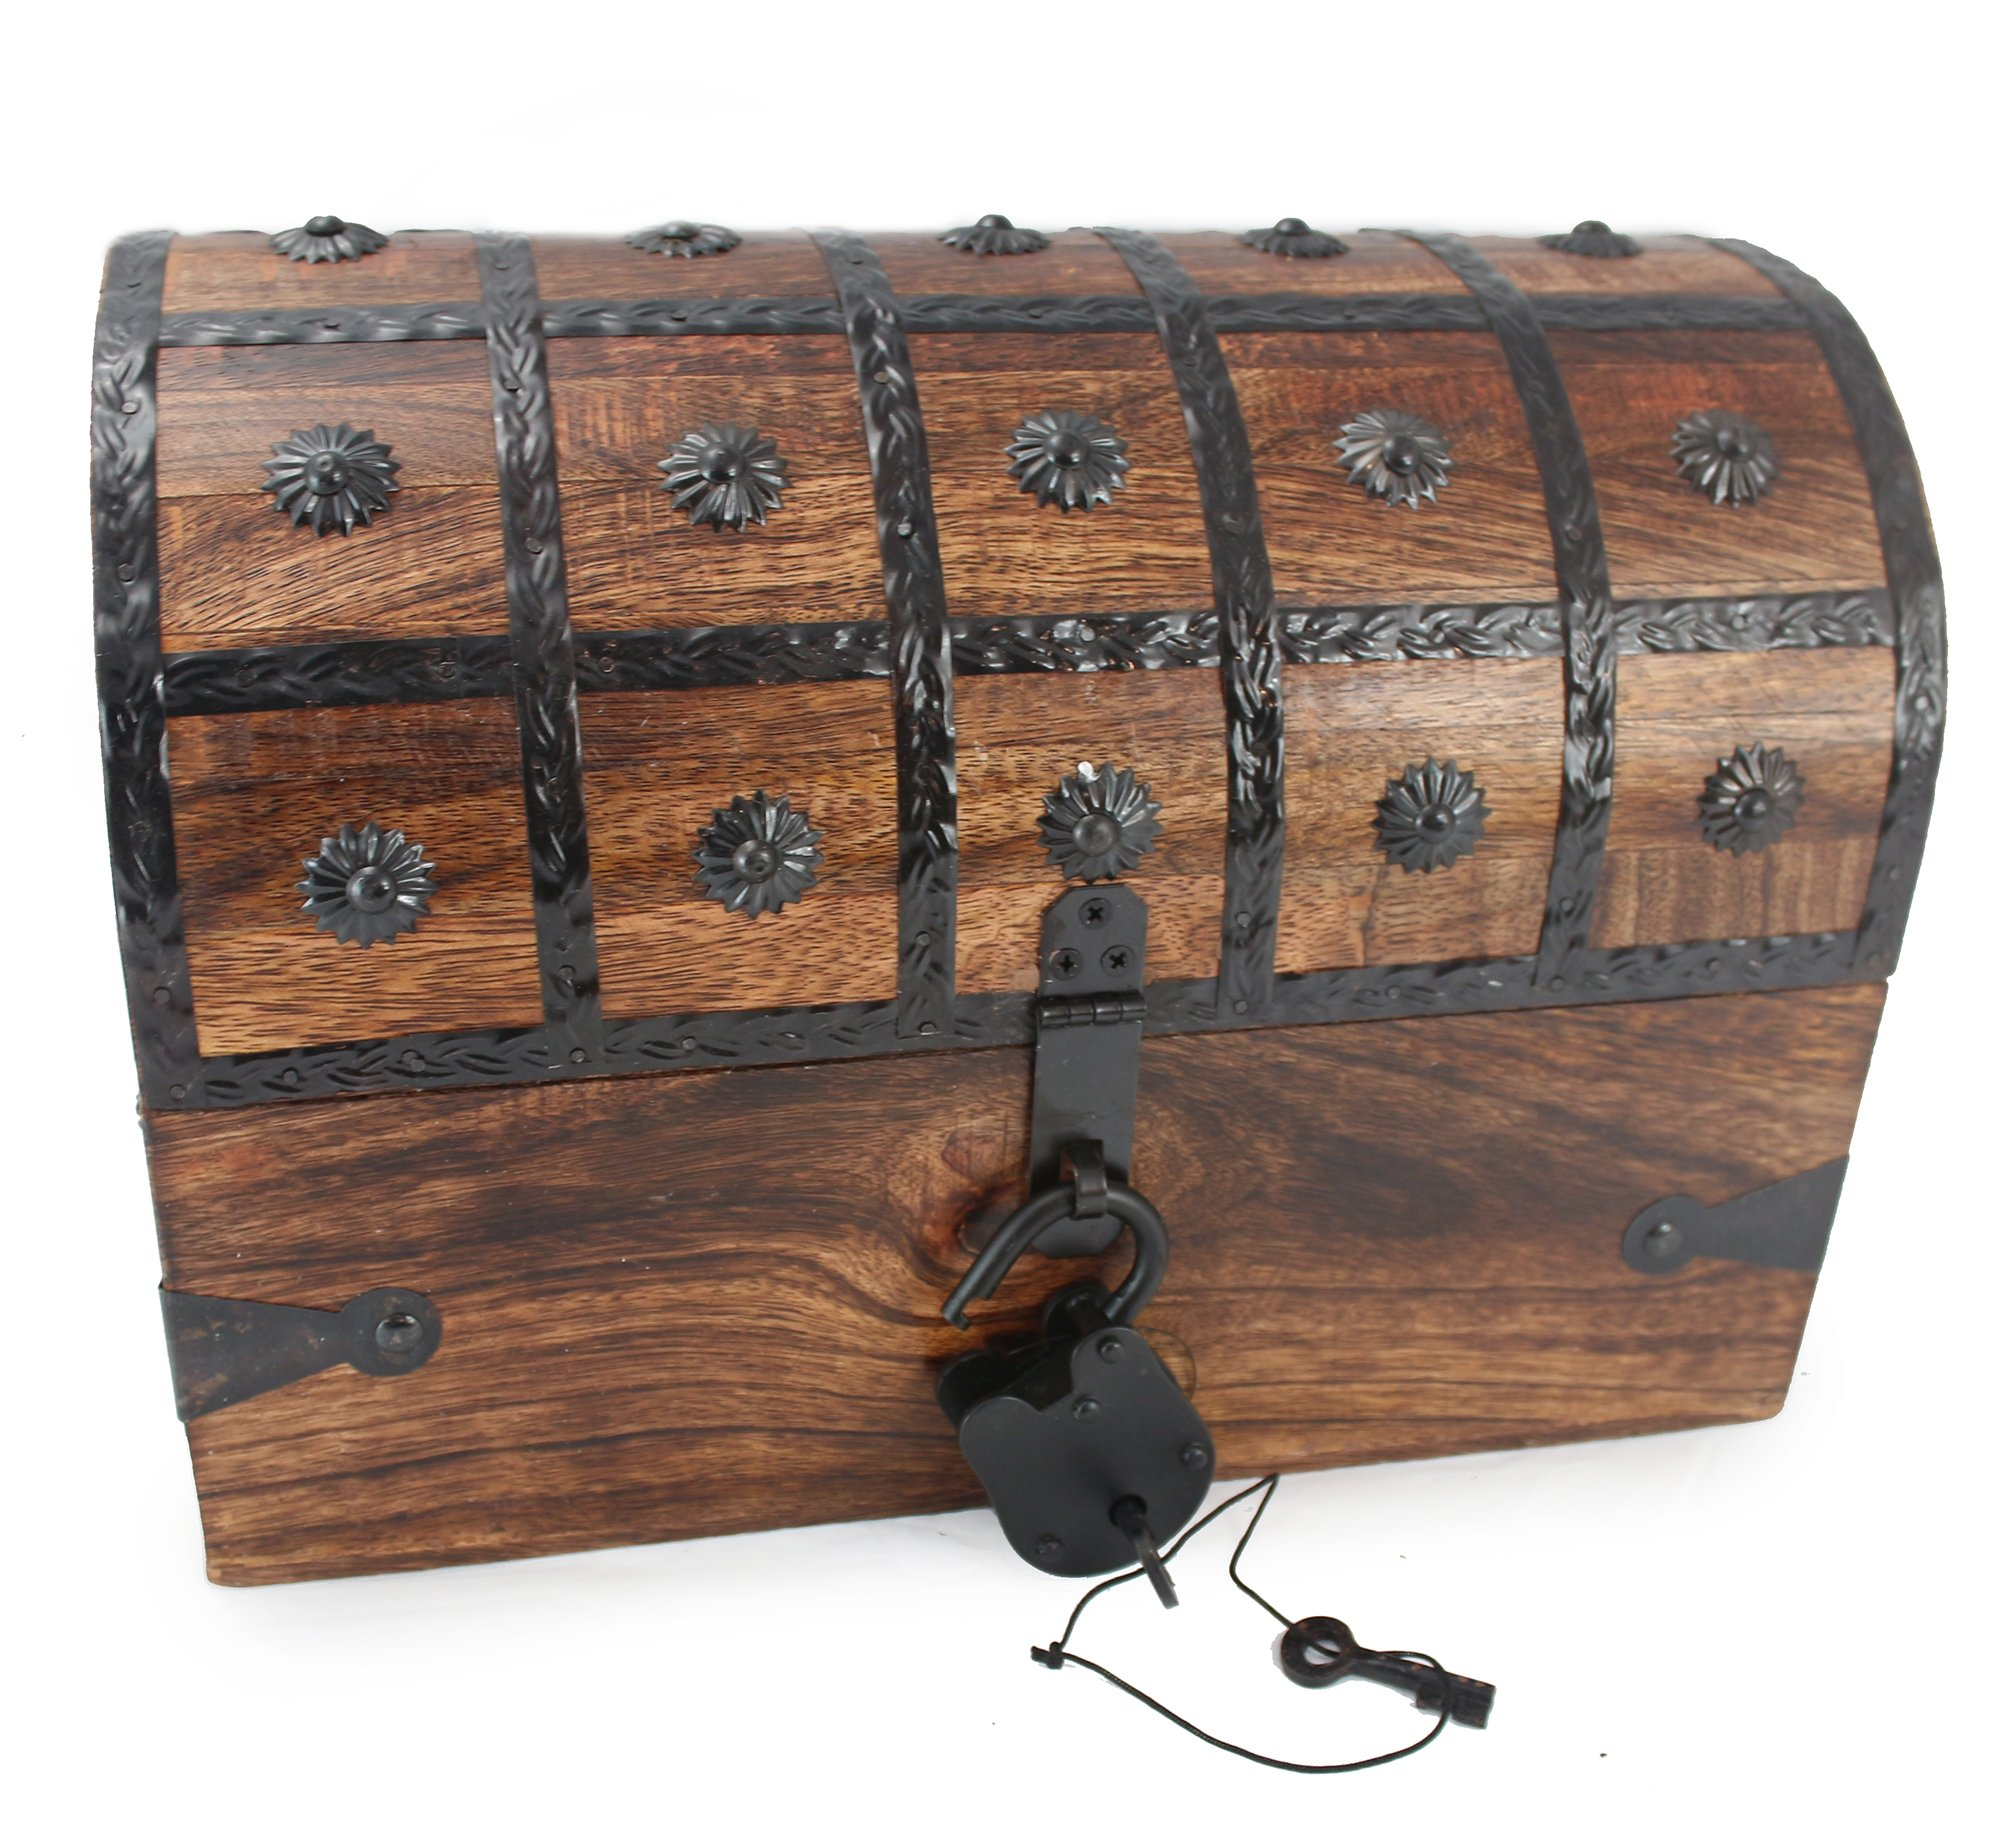 Well Pack Box WellPackBox Wooden Pirate Treasure Chest Box With Antique Style Lock And Skeleton Key (Large)